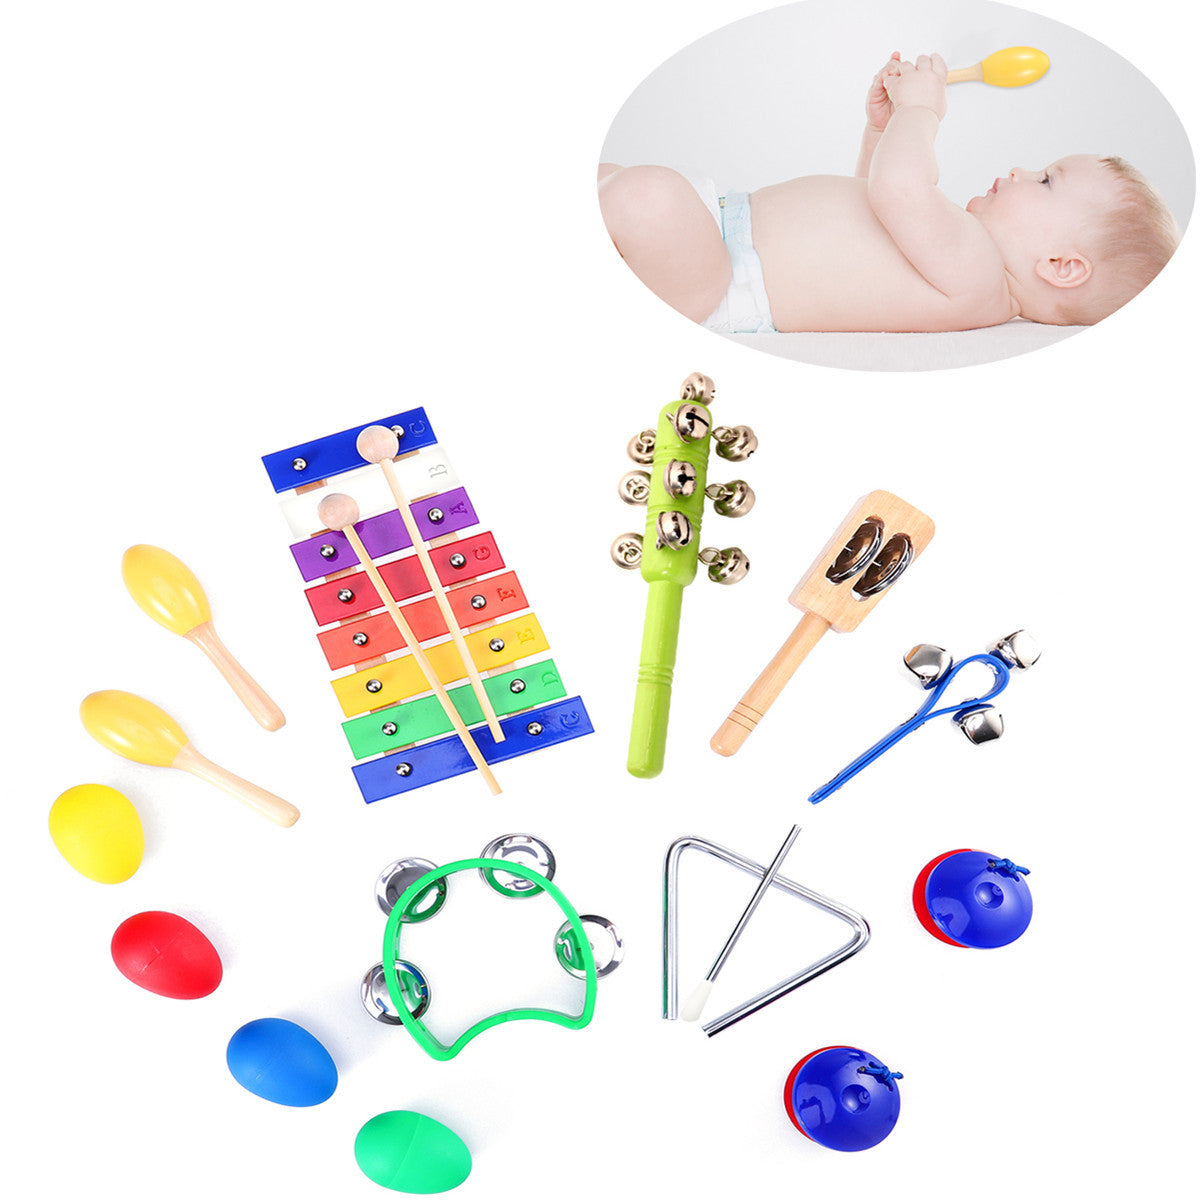 TOYMYTOY 15pcs Kids Musical Instruments Percussion Toy Rhythm Band Set Preschool Educational Tools with Carrying Bag